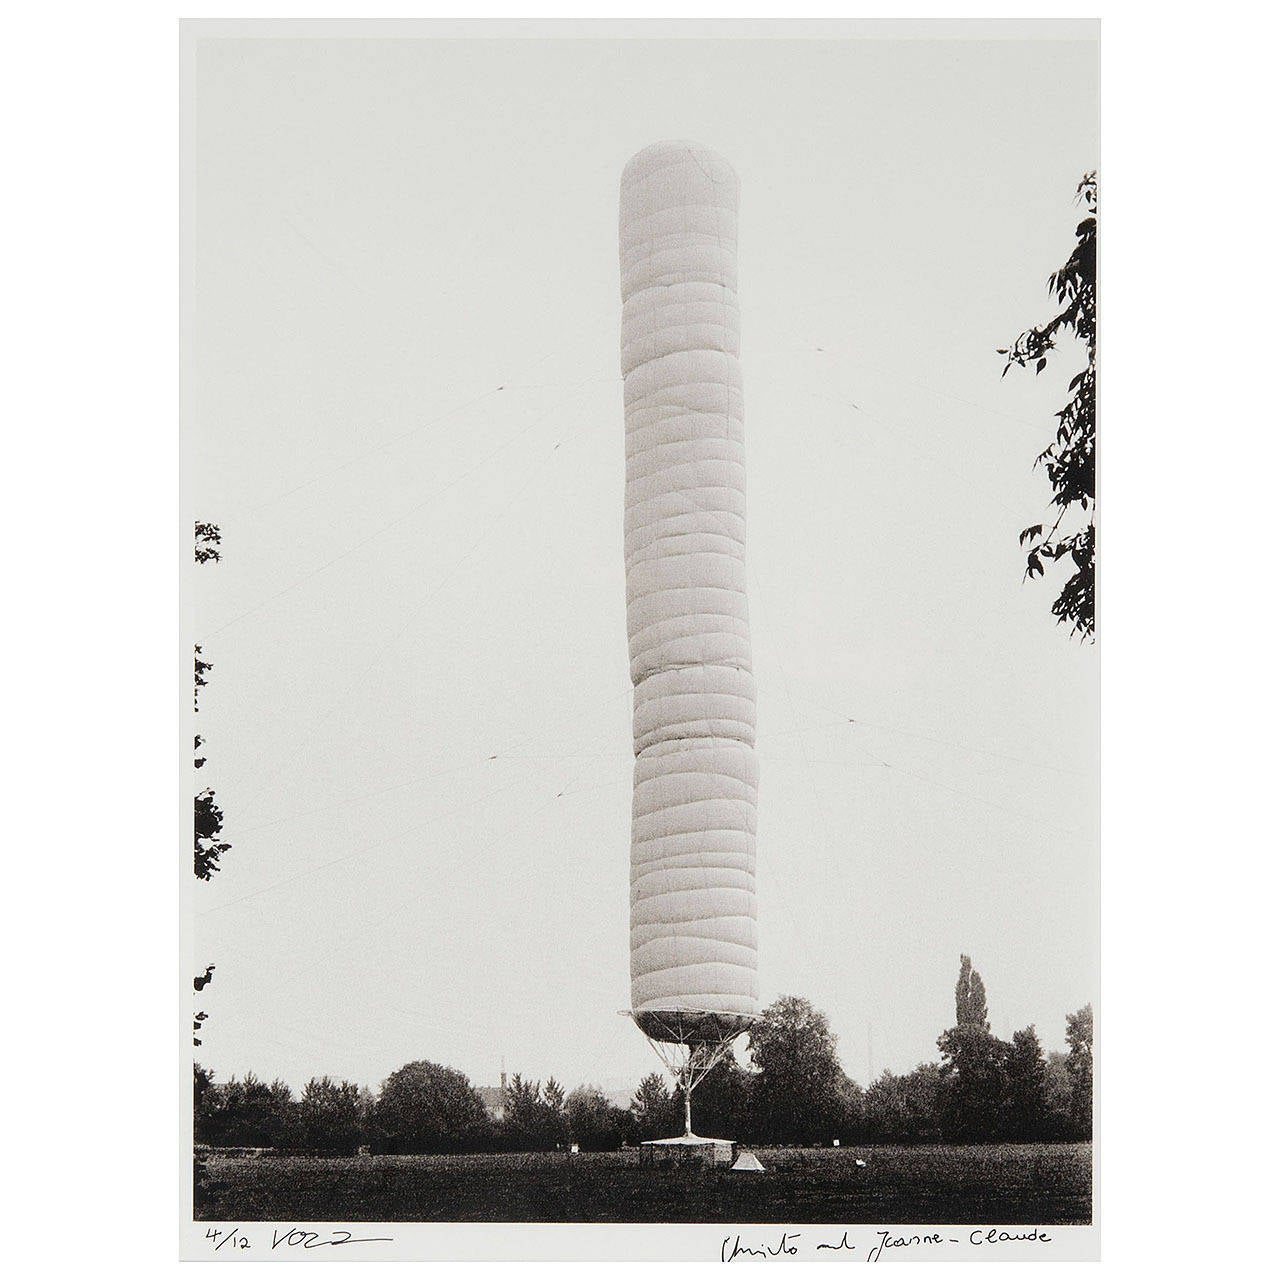 Christo and Jeanne-Claude Ultrachrome Print